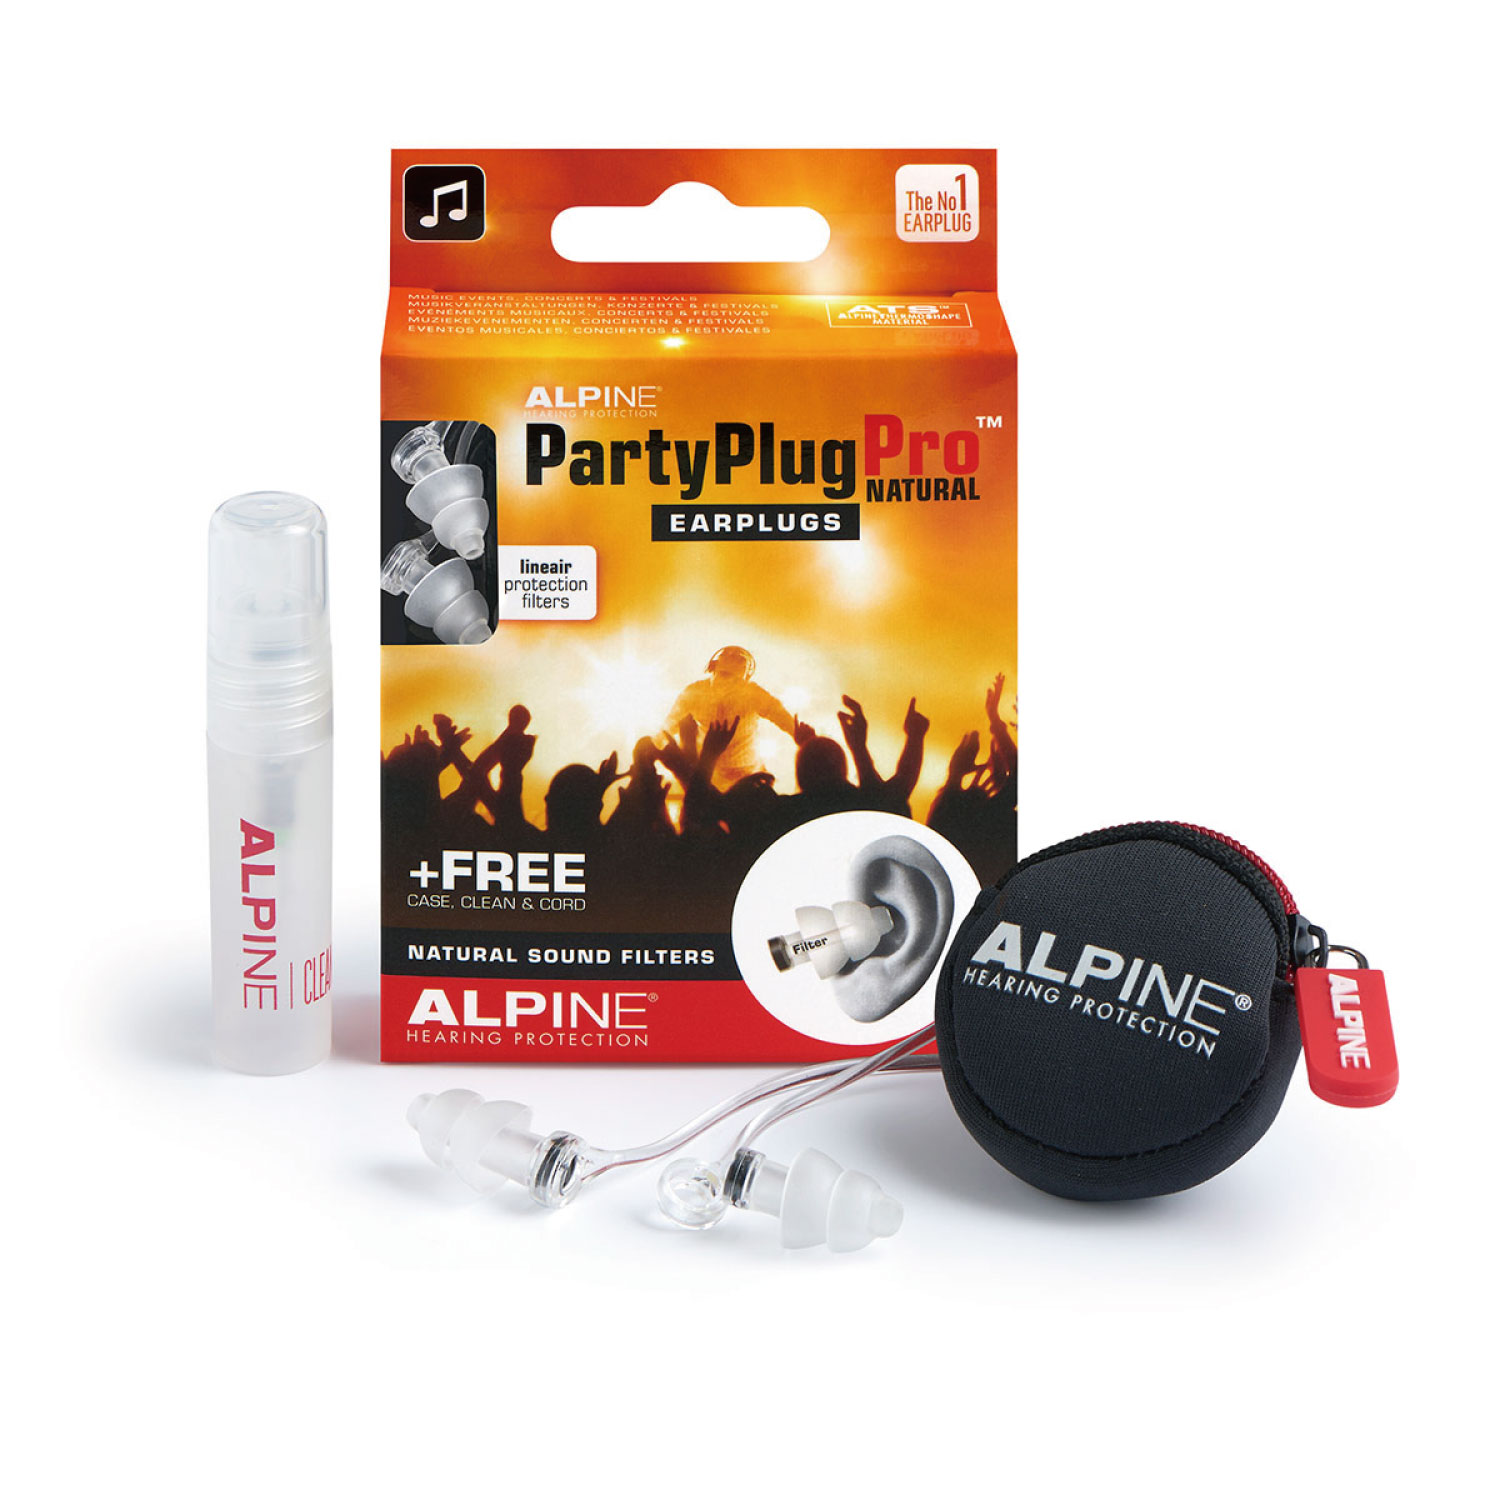 partyplug-pro-natural-alpine-hearing-protection---コピー